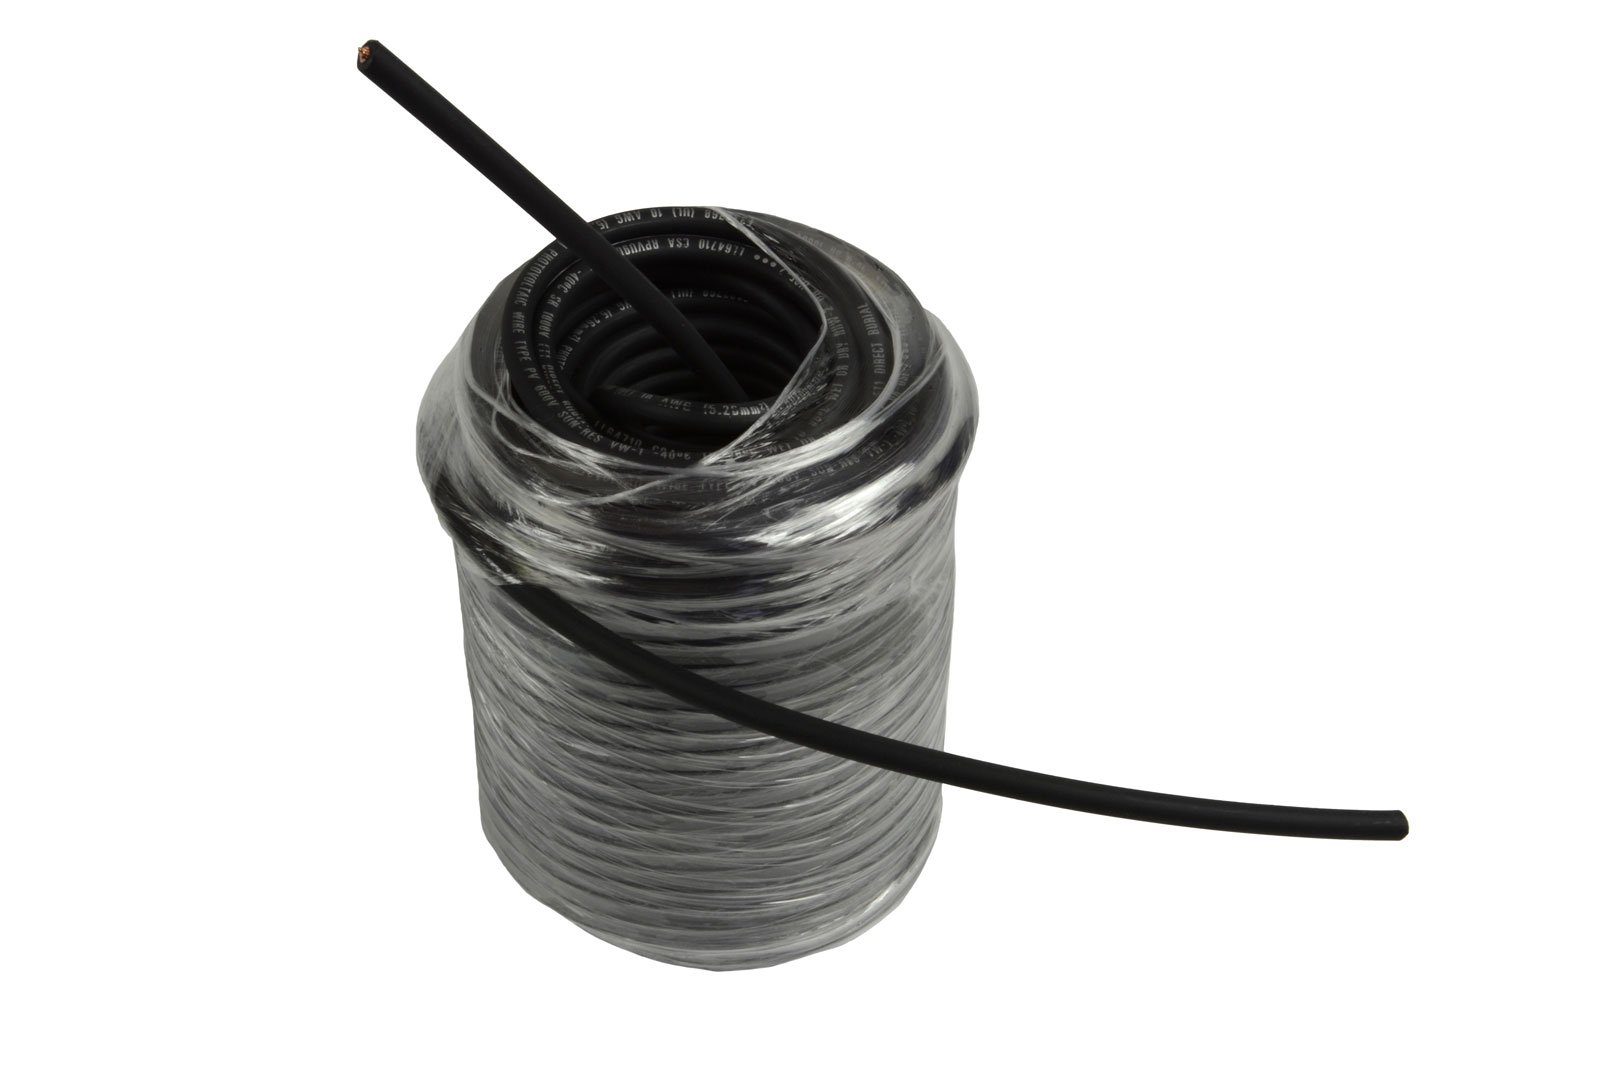 Temco 10 AWG Solar Panel Wire 500' Power Cable Black UL 4703 Copper Made in USA PV Gauge by Temco